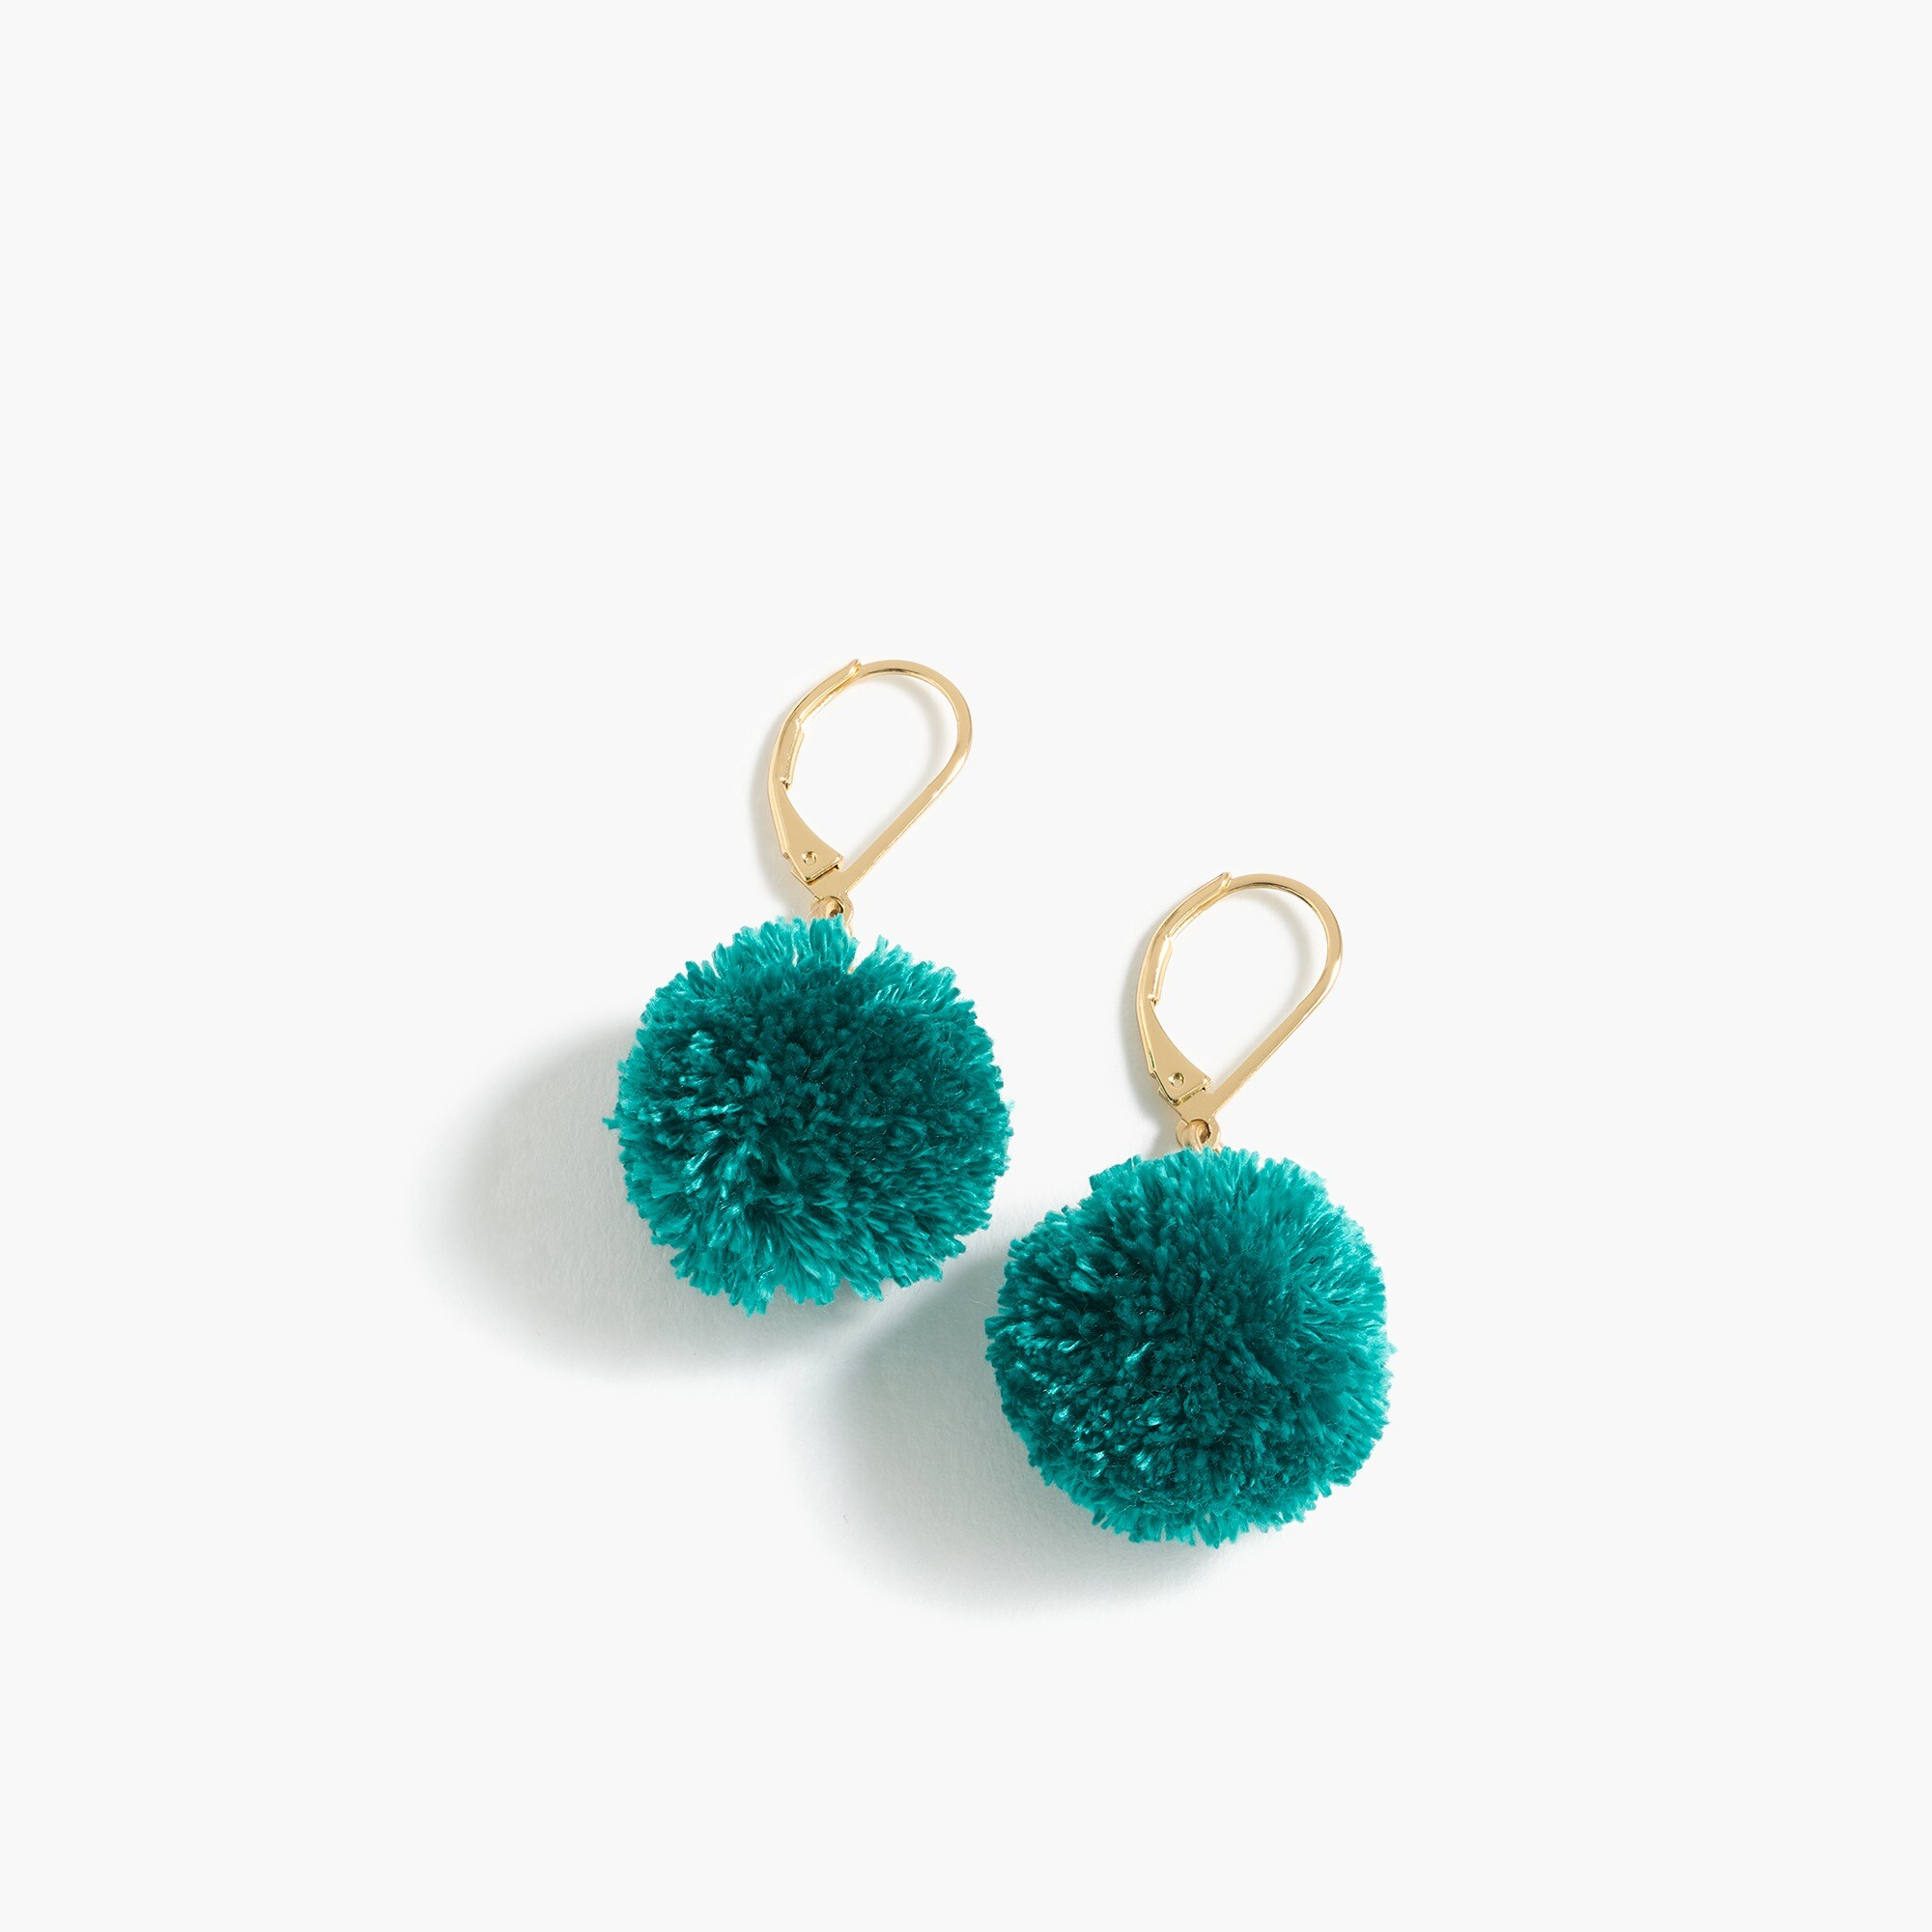 Pom-pom earrings women new arrivals c